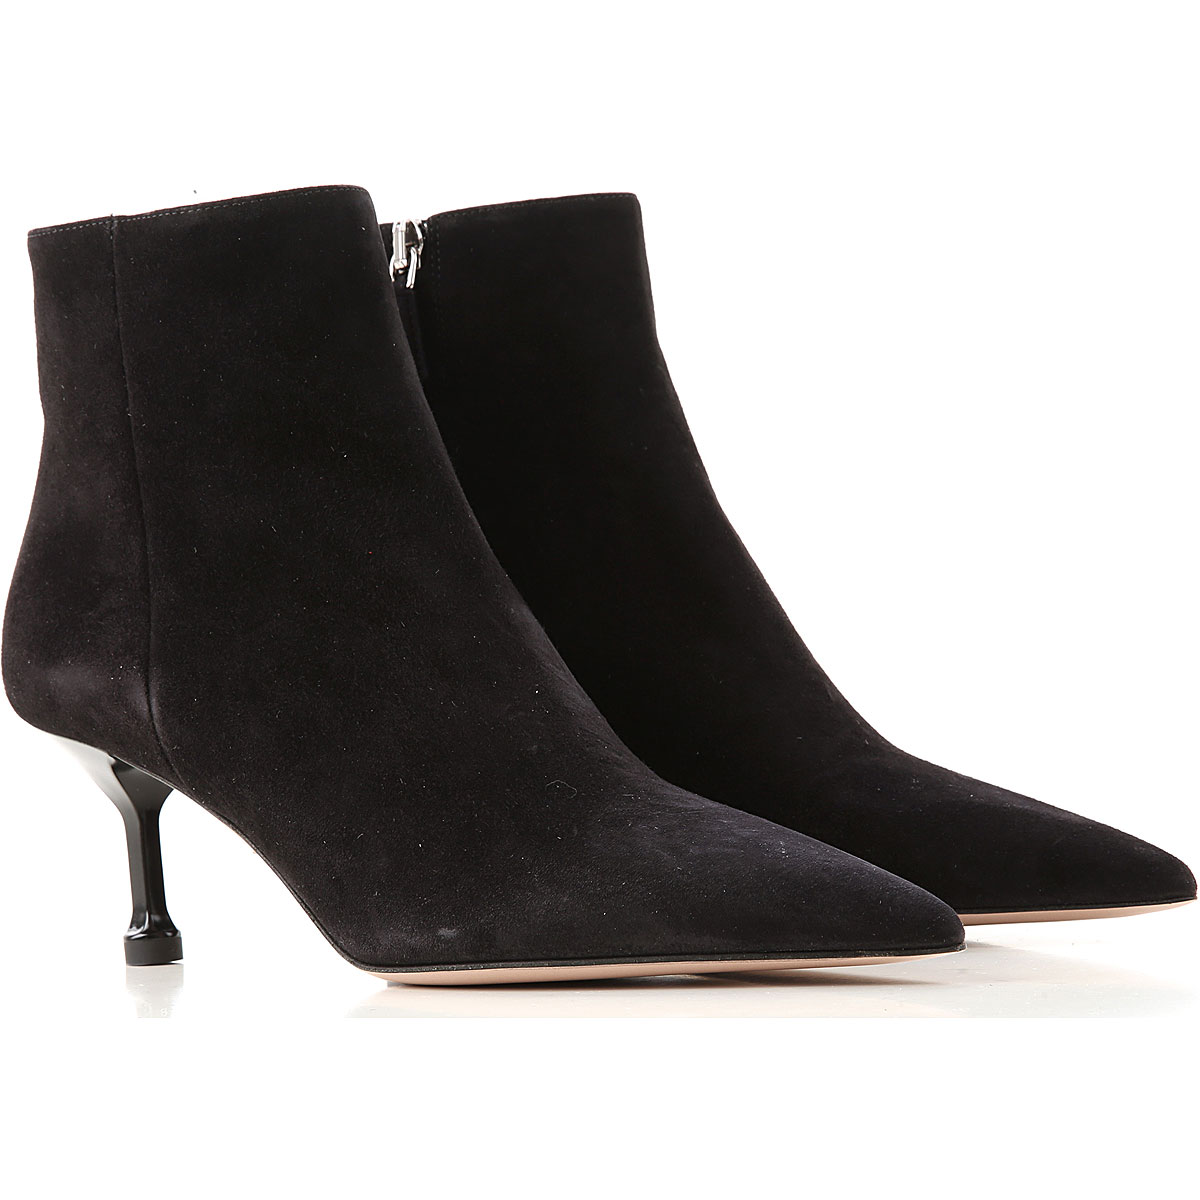 Prada Boots for Women, Booties On Sale, Black, Suede leather, 2019, 5.5 6 7.5 8.5